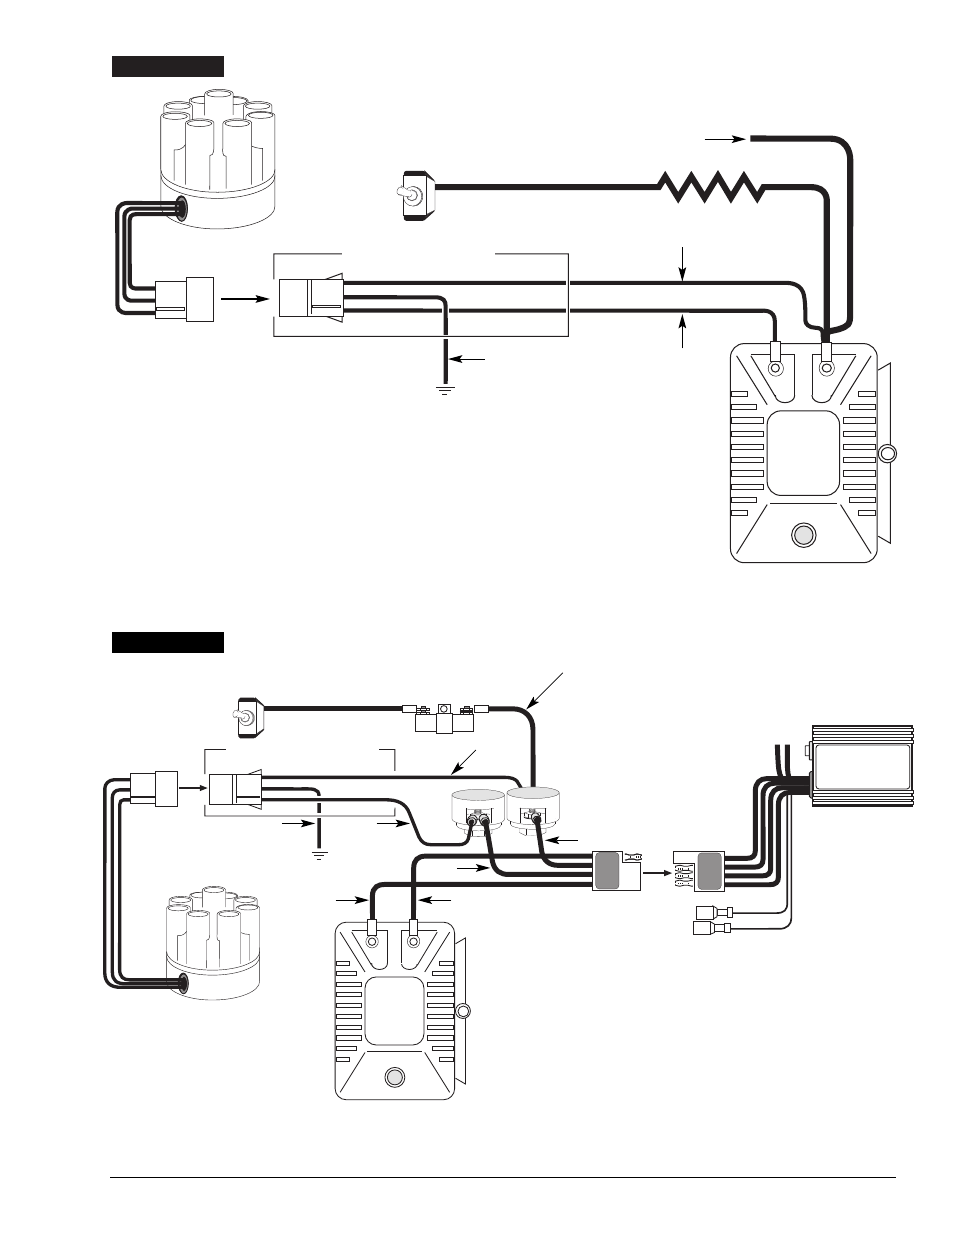 Mallory Ignition Wiring Diagram Magneto | Wiring Liry on